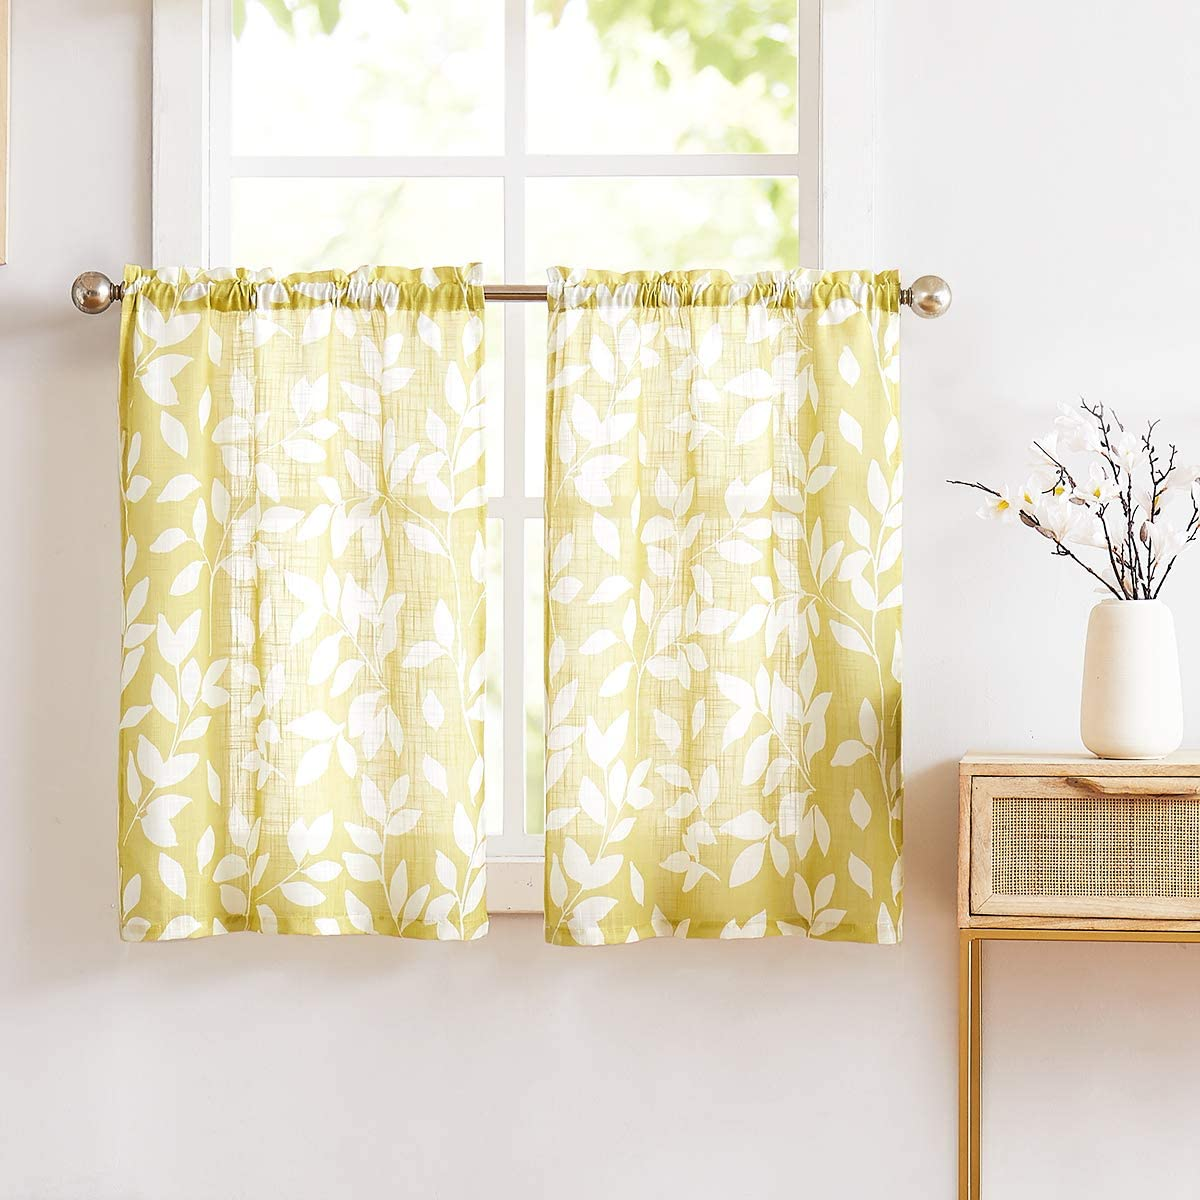 Amazon Com Treatmentex Print Tier Curtains For Kitchen 24 Mustard Yellow And White Small Print Café Curtains 2panels Home Kitchen